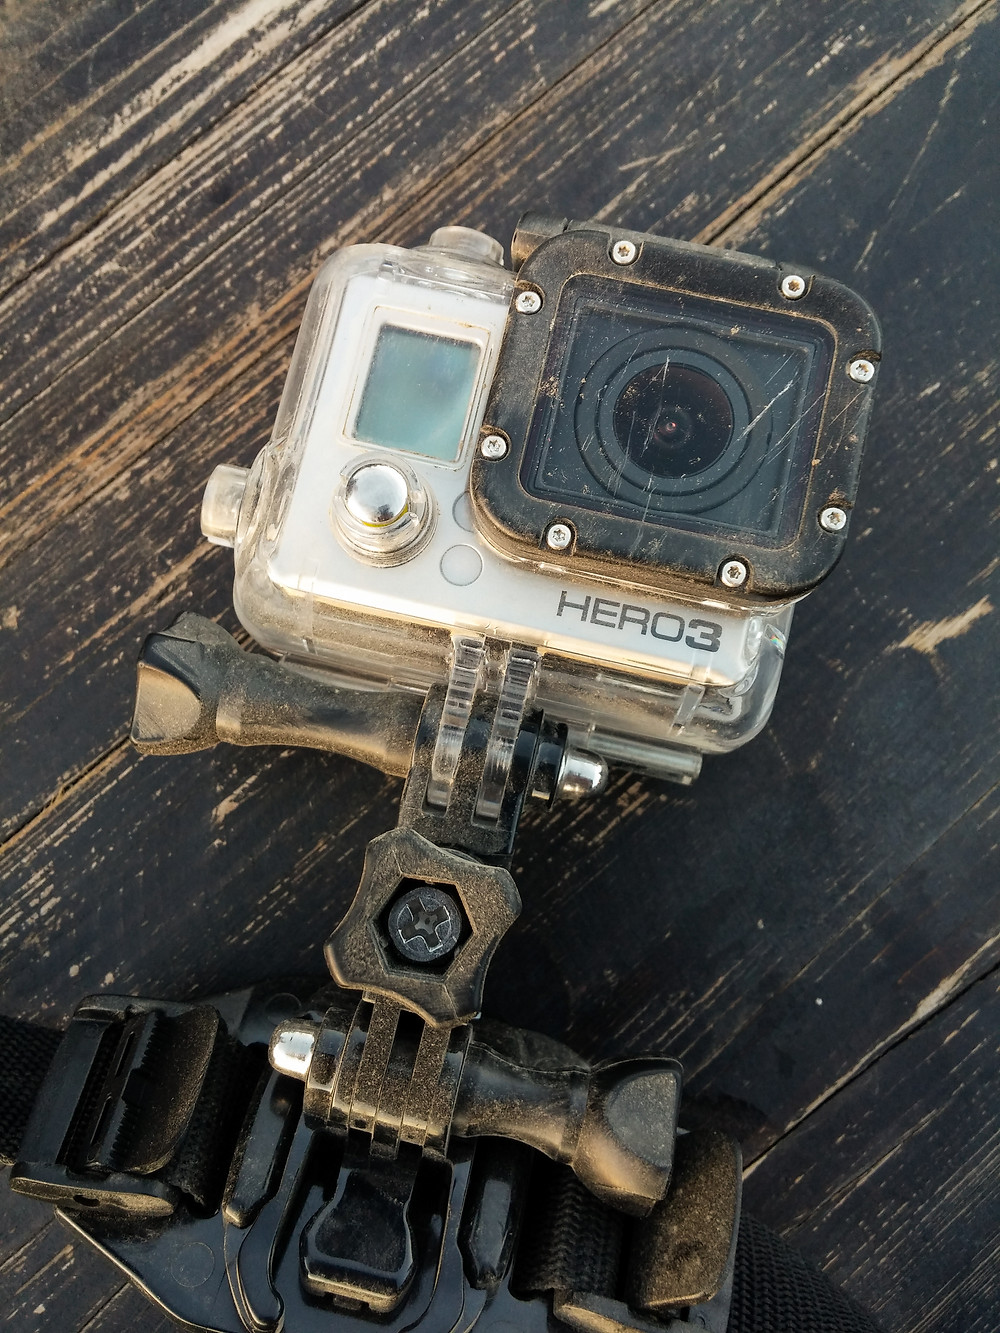 GoPro Hero 3 Black Edition: Battlefield tested